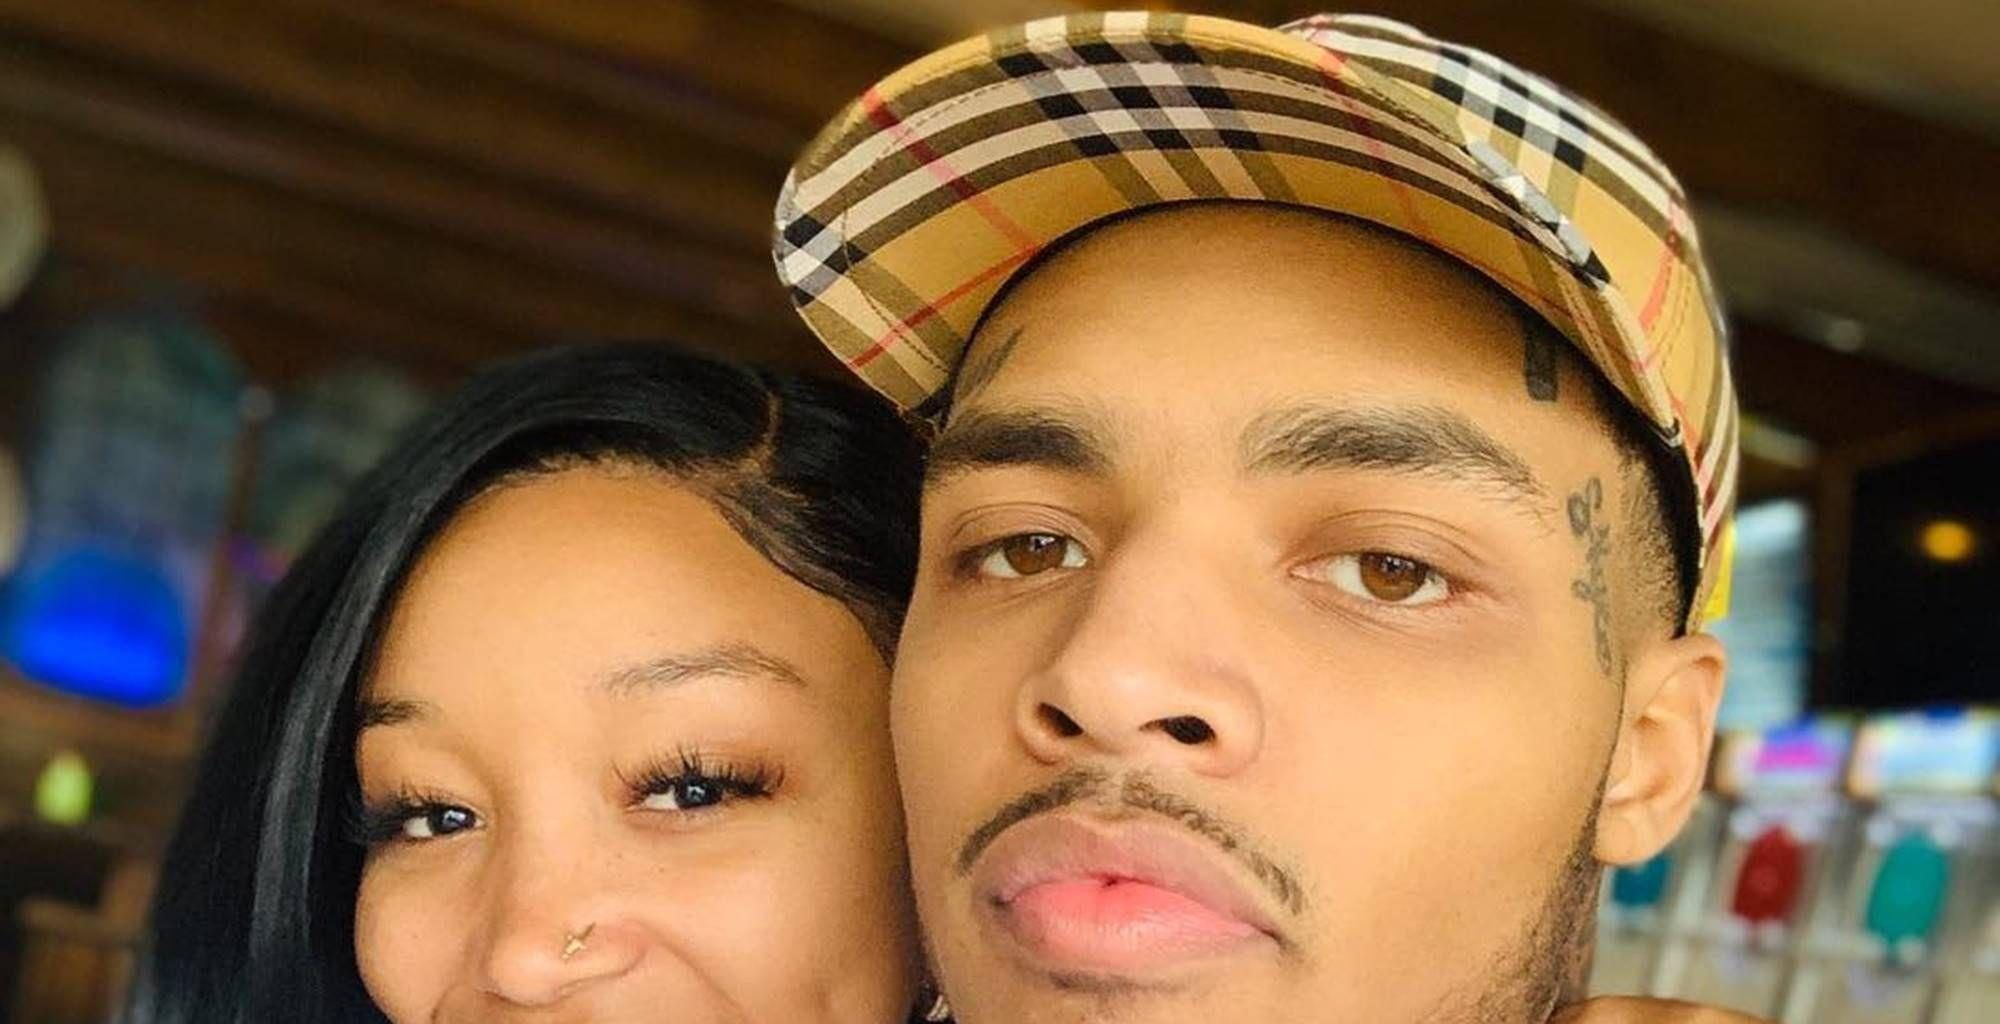 Tiny Harris' Daughter, Zonnique Pullins Shares Throwback Video & Photo Made By Her Man During Their Cruise